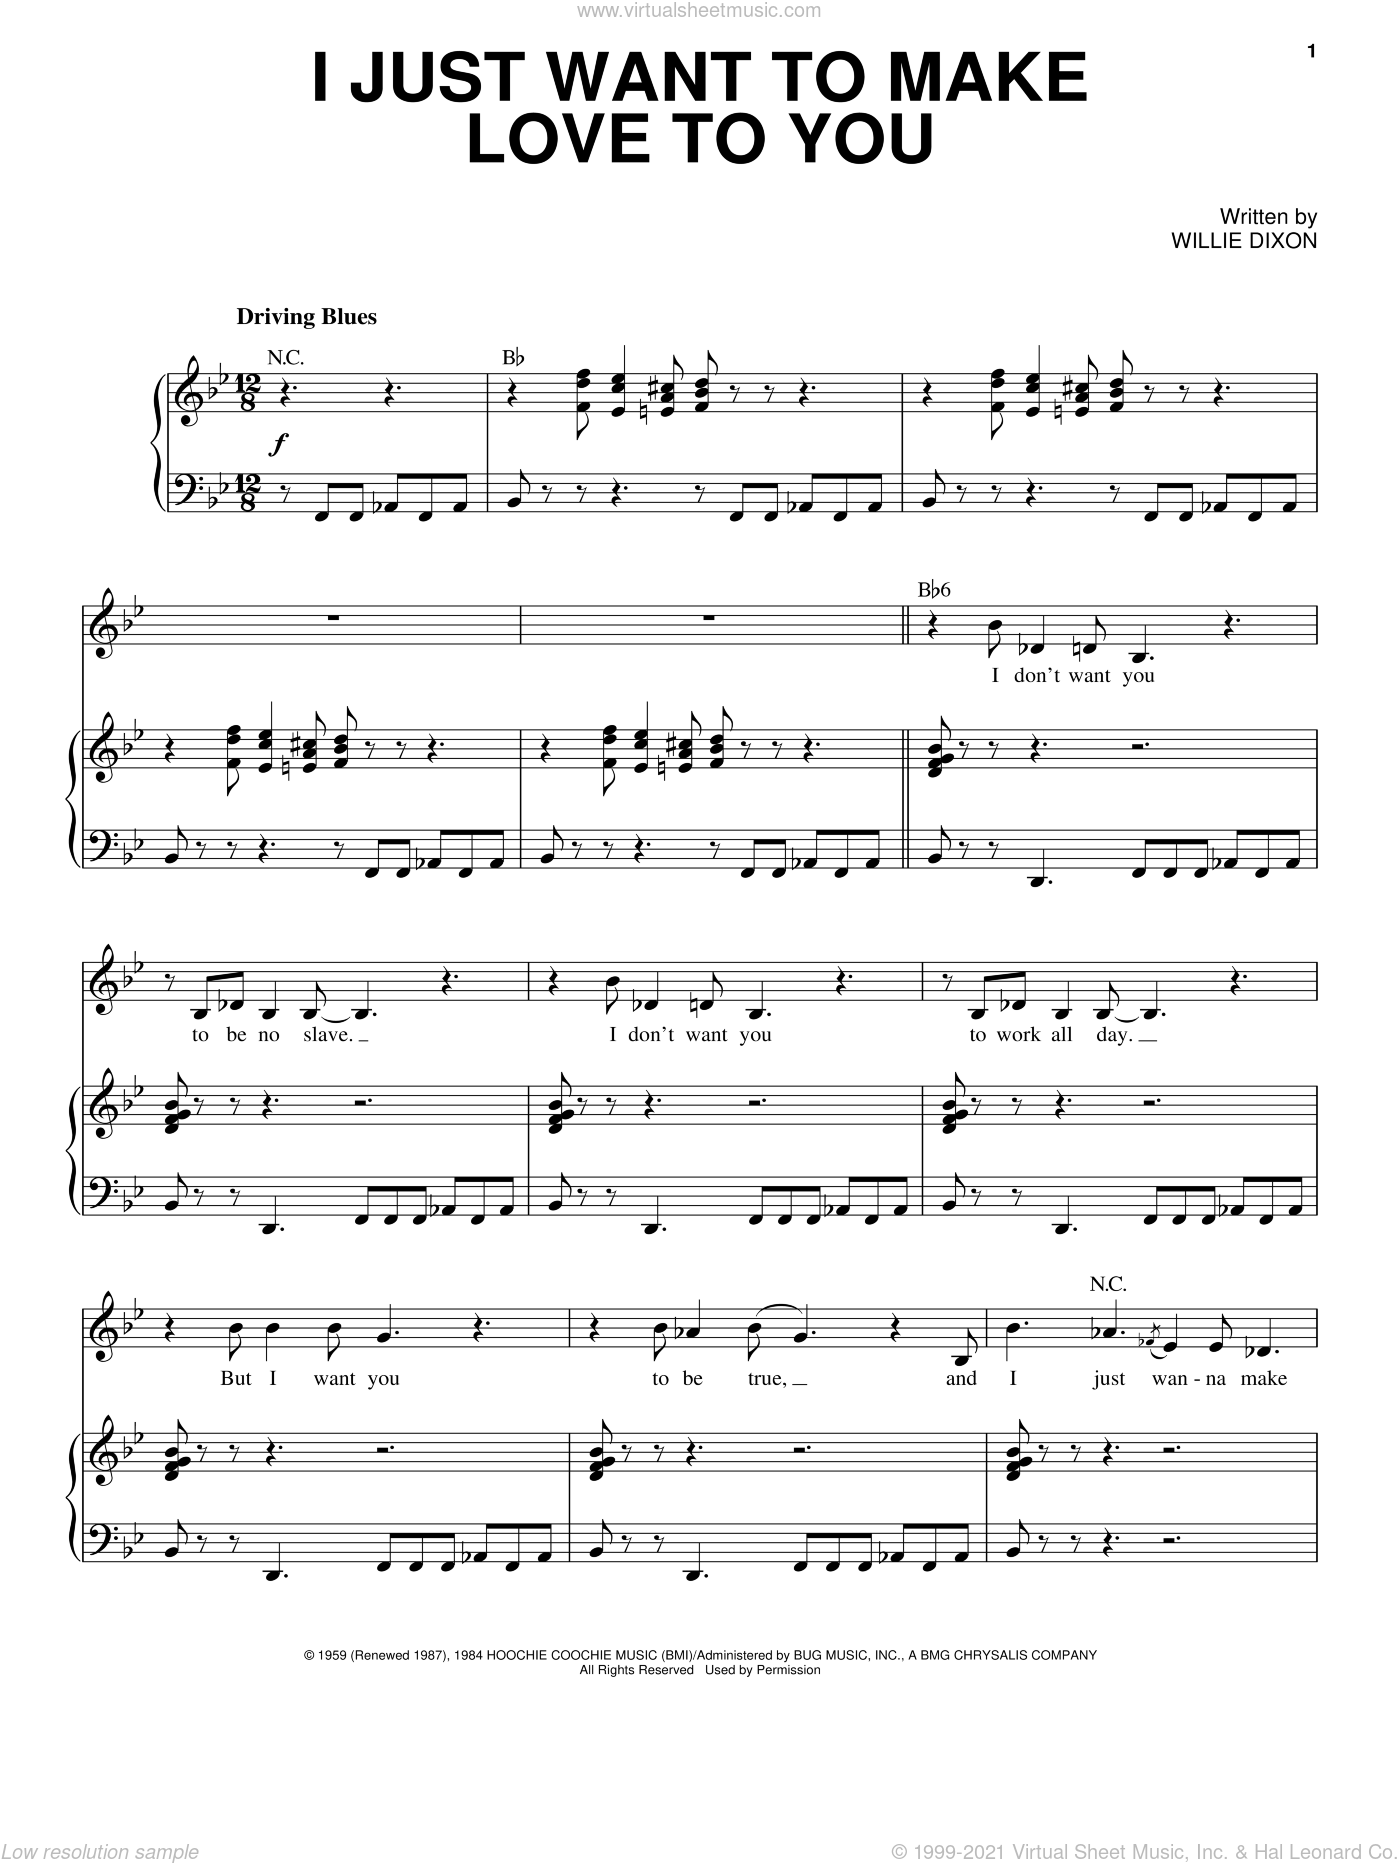 I Just Want To Make Love To You sheet music for voice and piano by Etta James, Foghat and Willie Dixon, intermediate